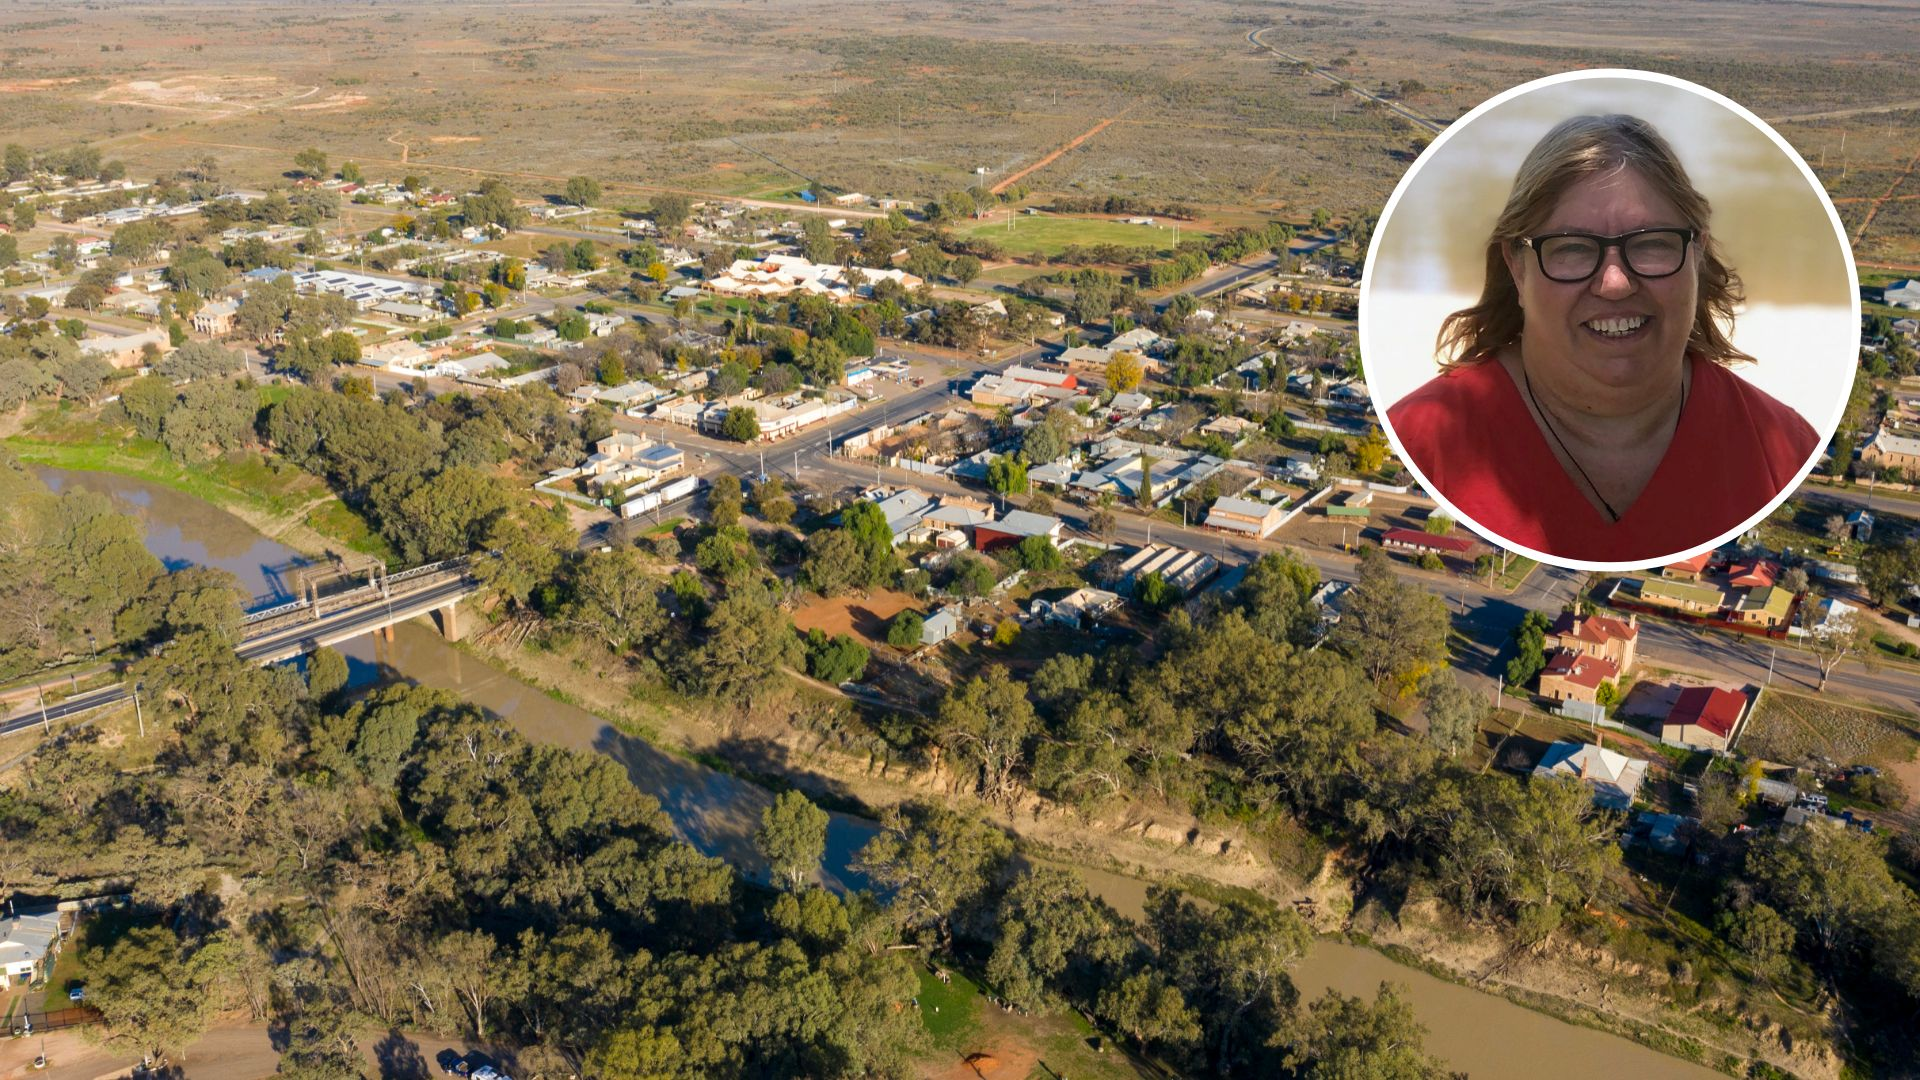 COVID-19 in Wilcannia is a national disgrace 'we all saw coming'